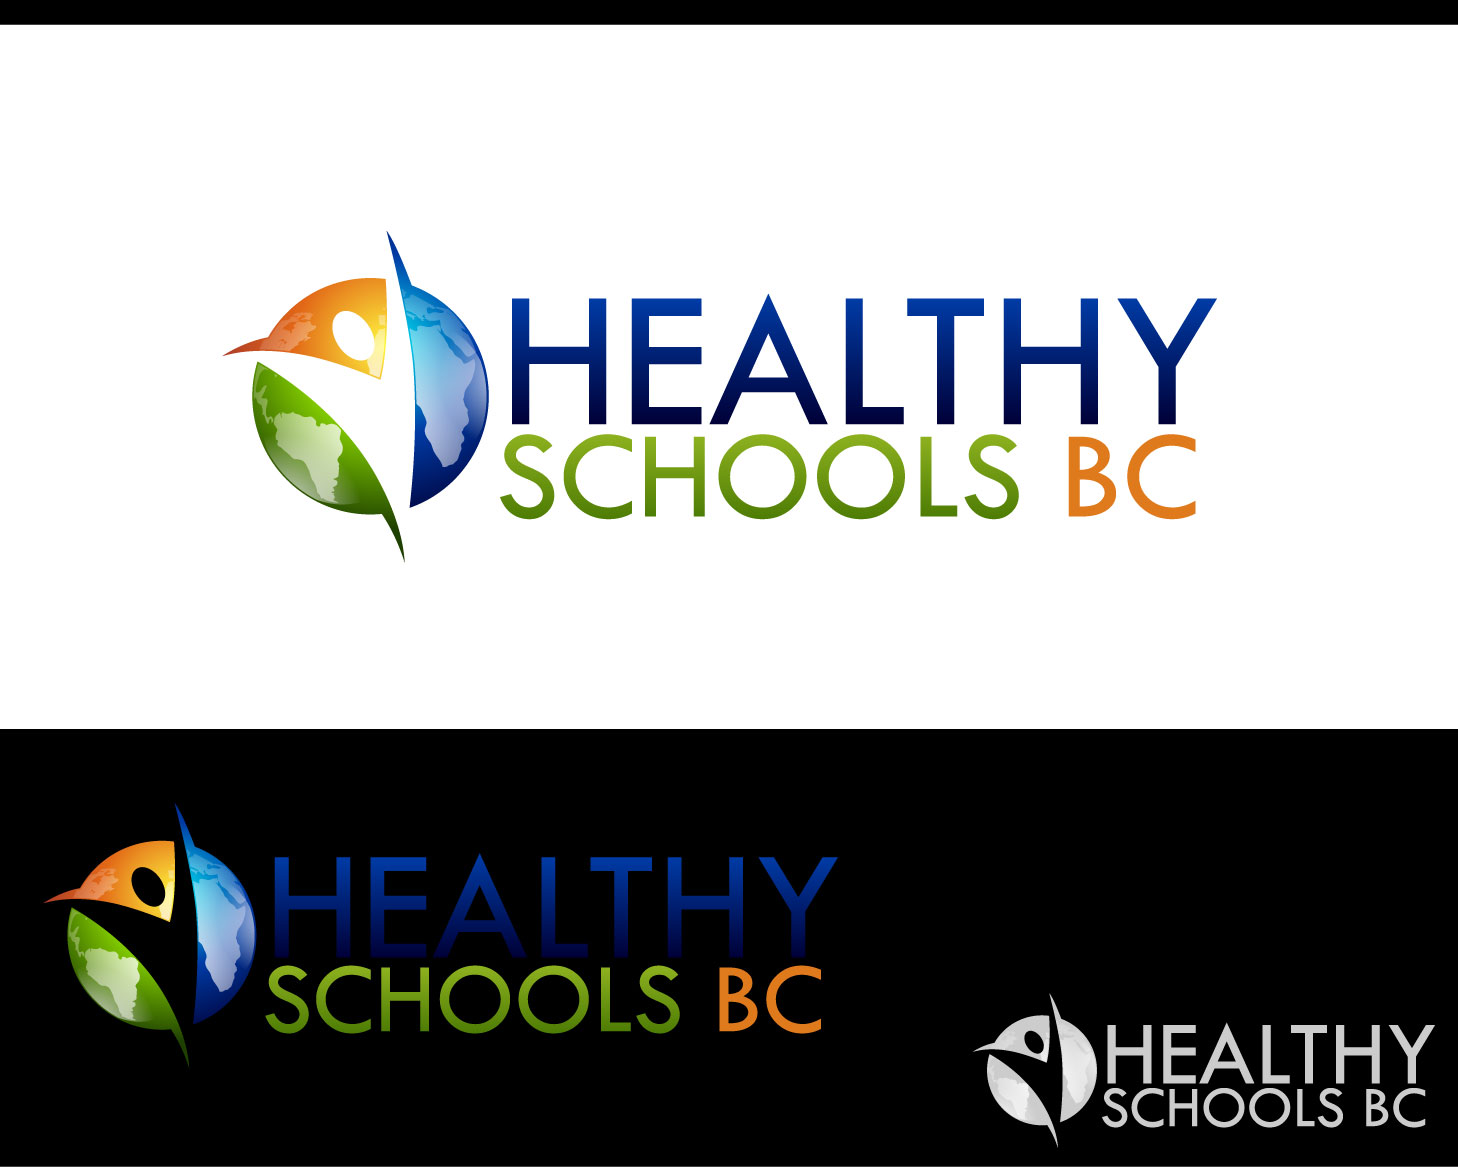 Logo Design by Private User - Entry No. 136 in the Logo Design Contest SImple, Creative and Clean Logo Design for Healthy Schools British Columbia, Canada.